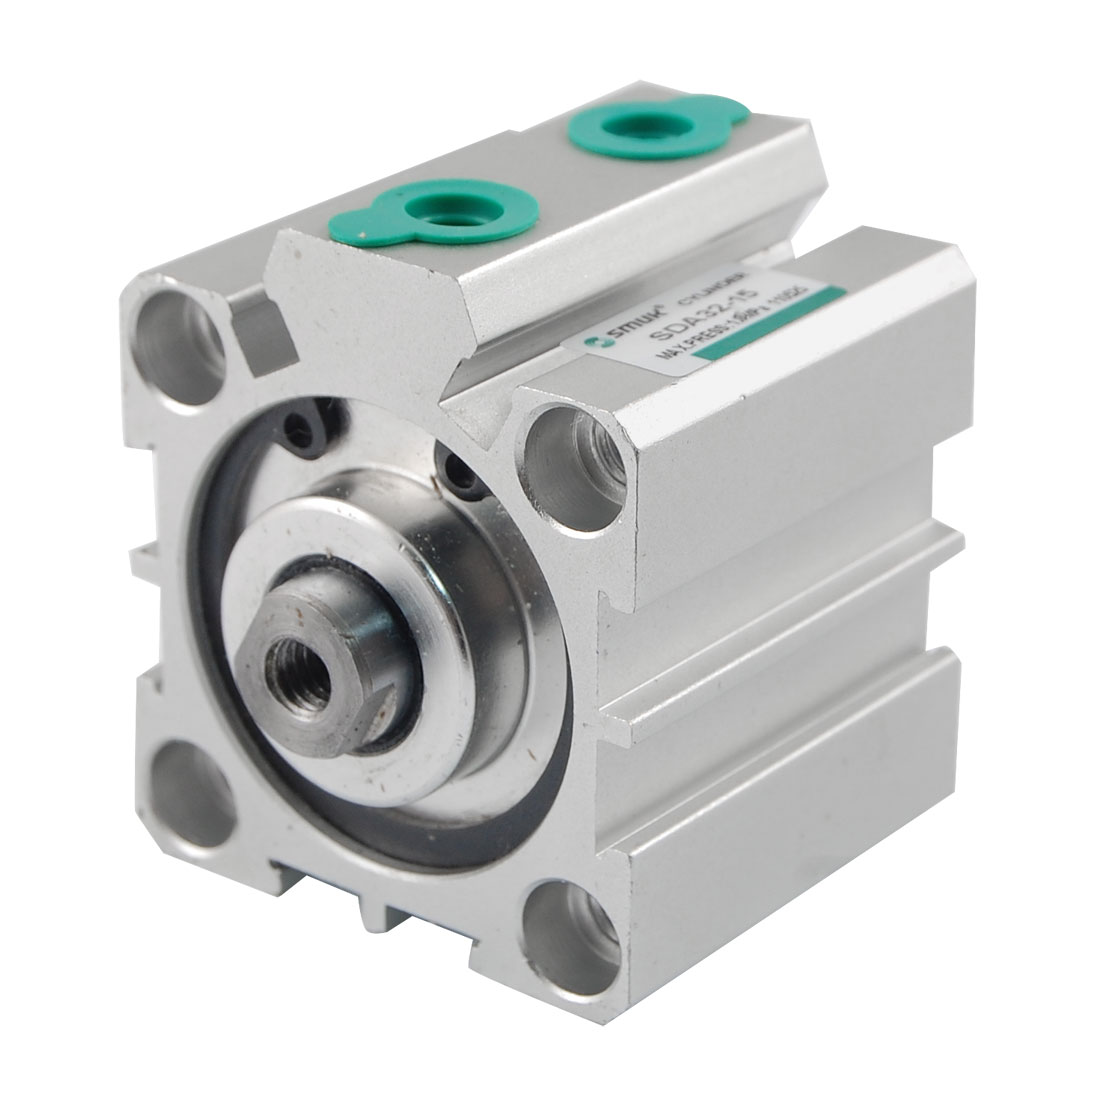 32mm Bore 15mm Stroke Compact Pneumatic Air Cylinder SDA